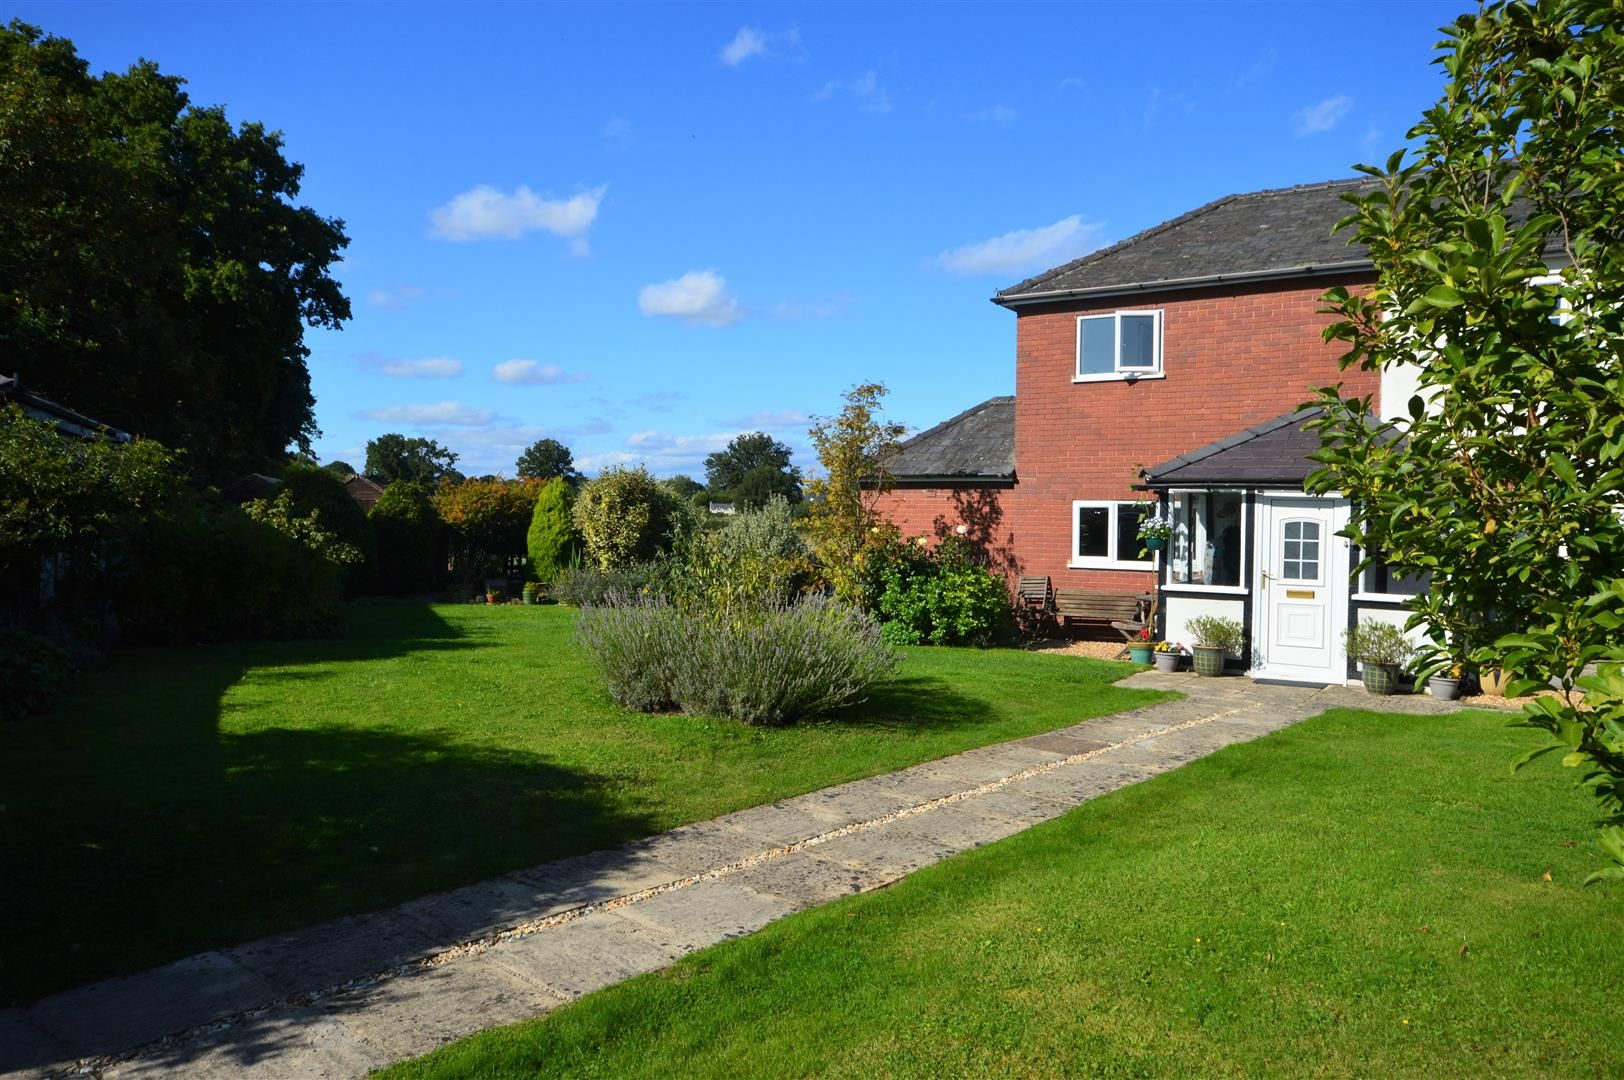 4 bed detached for sale in Shirlheath 15